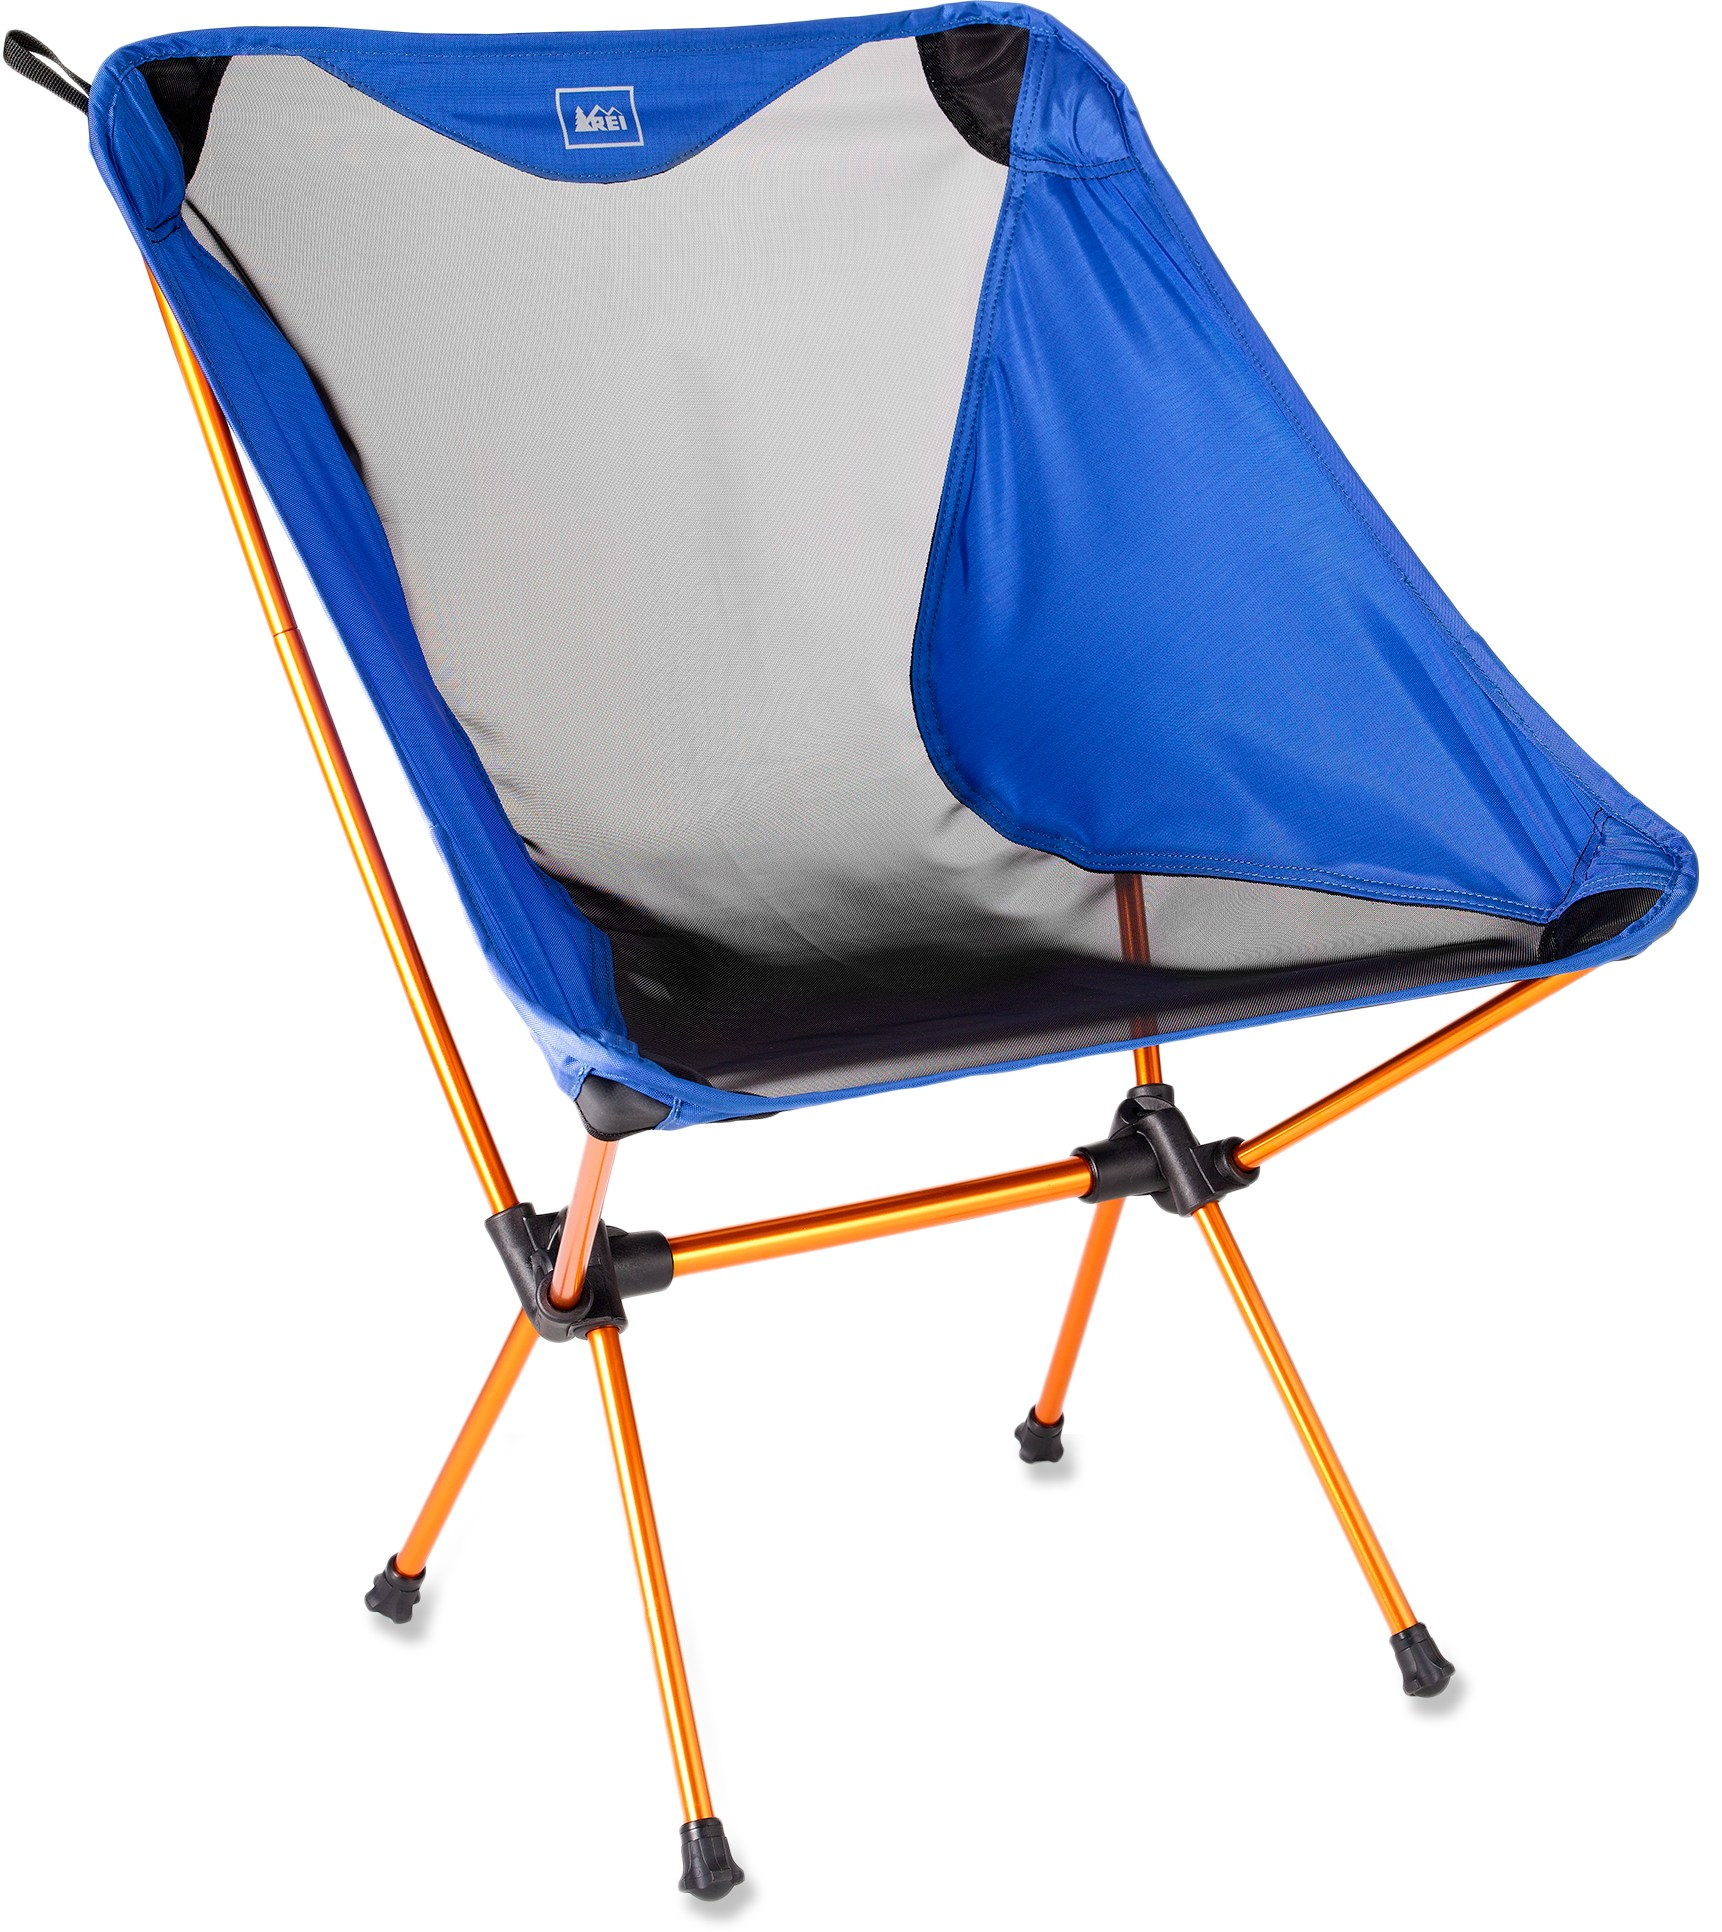 Lightweight Camping Chair Pedalling Along